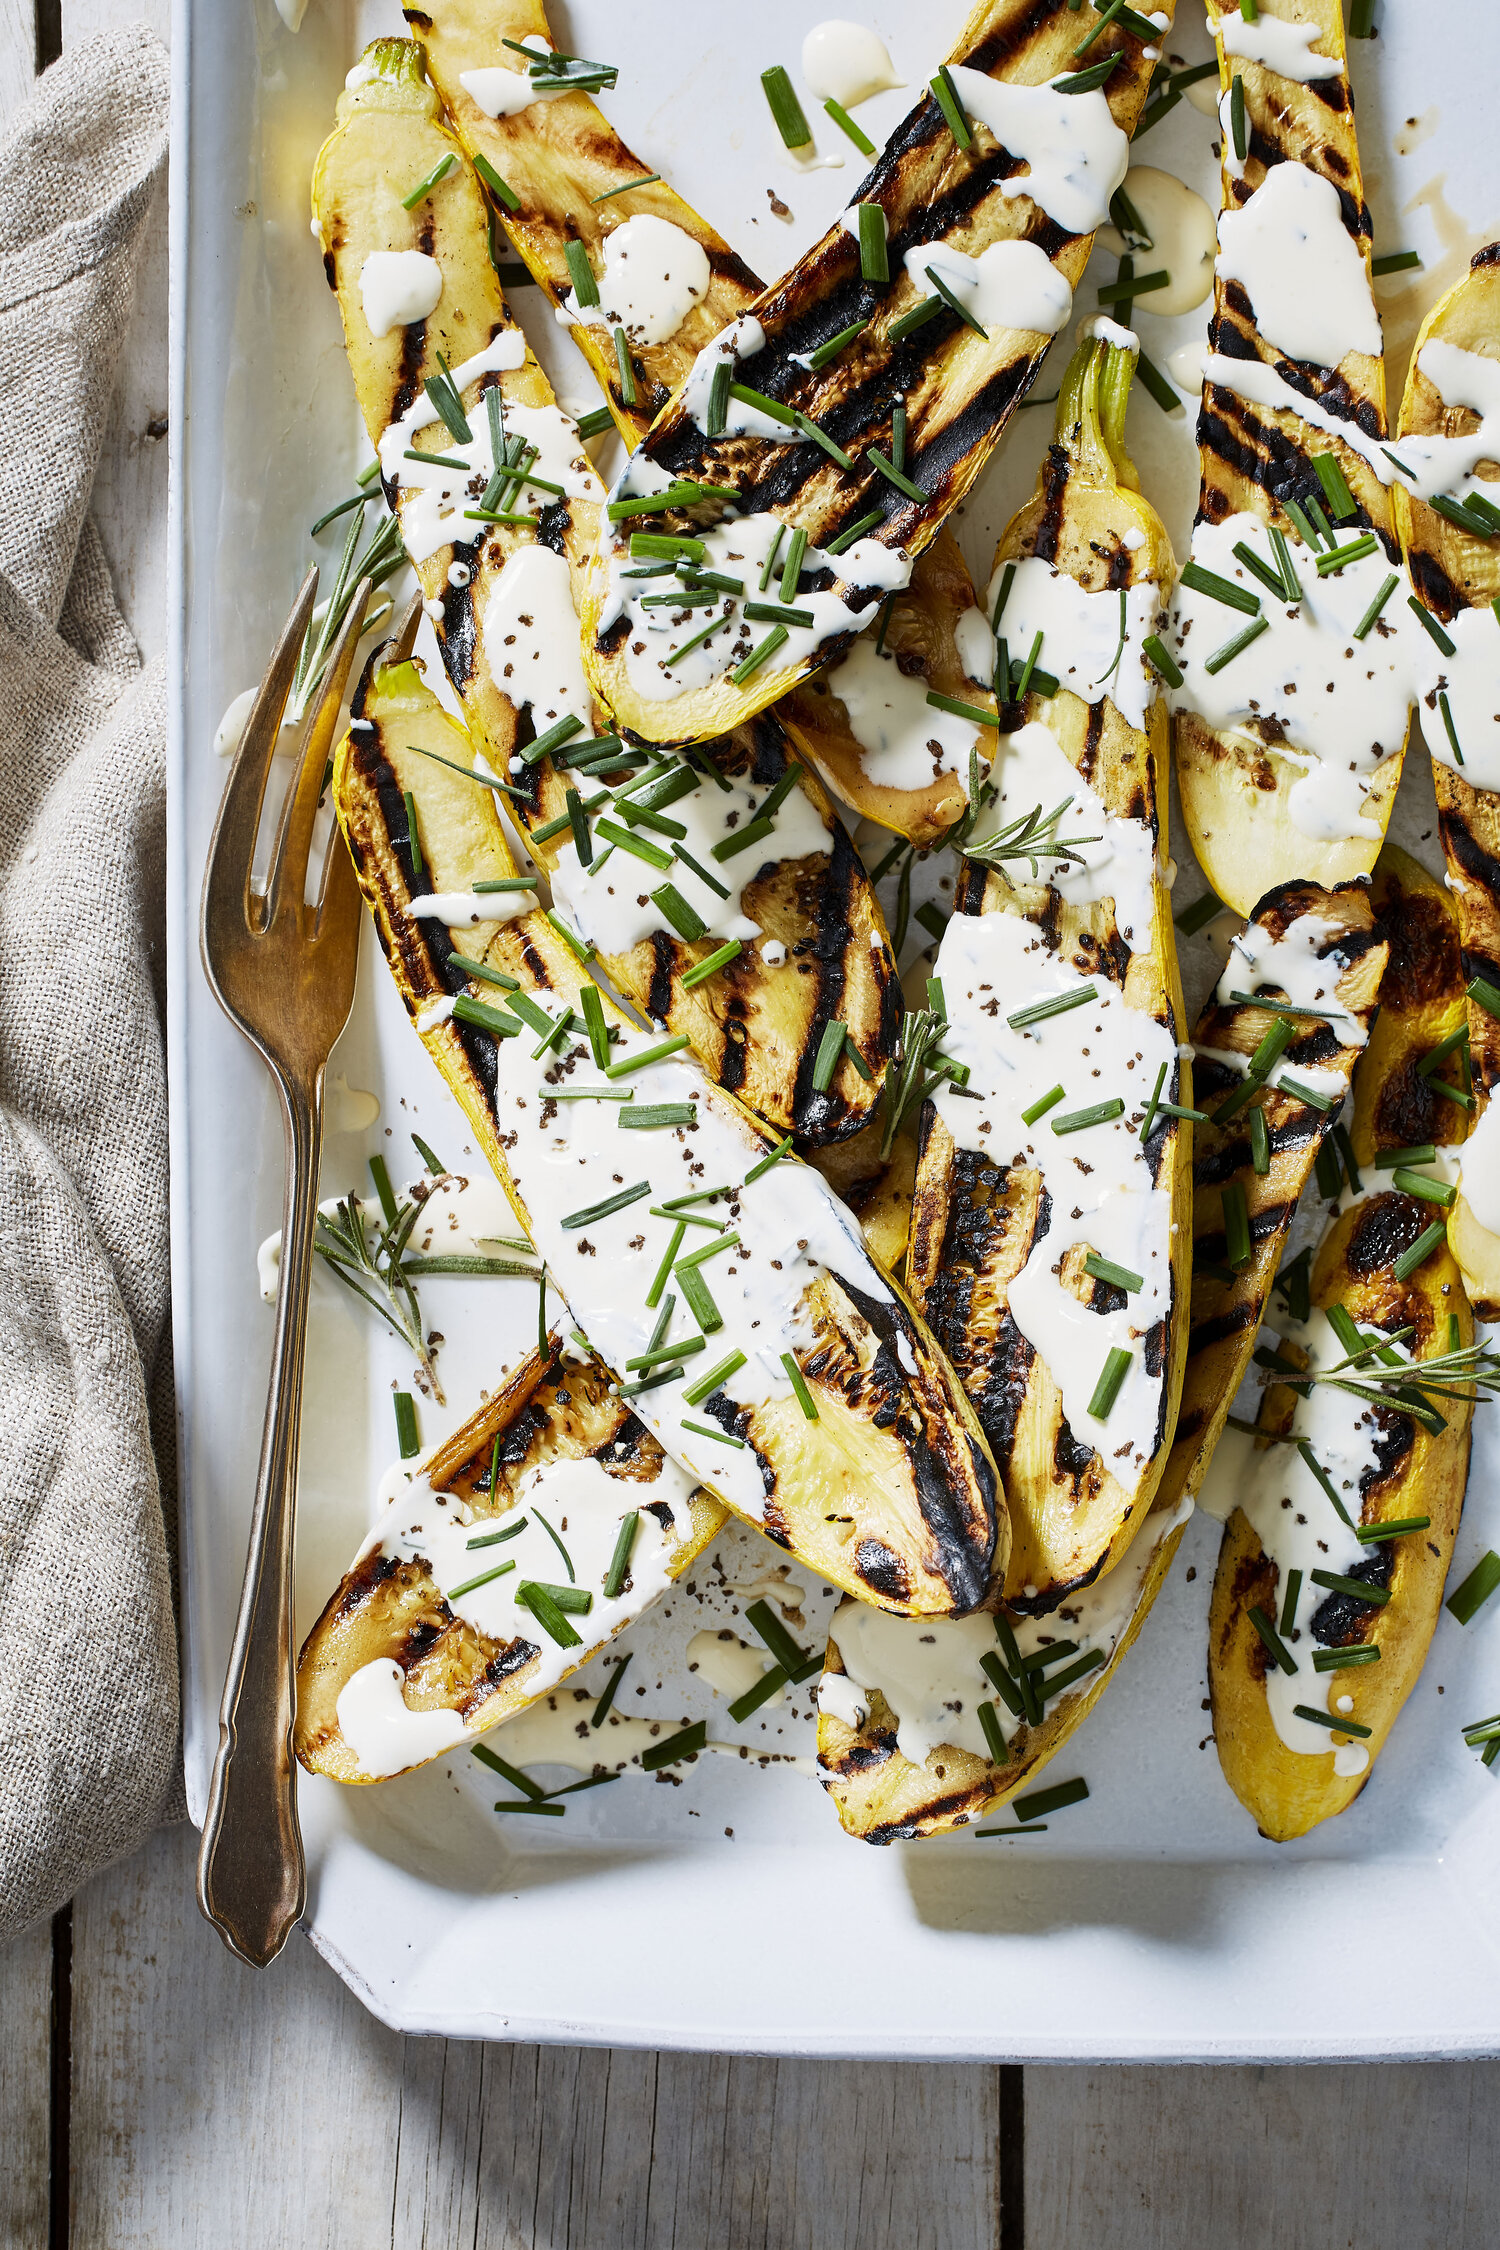 Blackened Summer Squash with Buttermilk Cream Sauce, Rosemary, and Chives